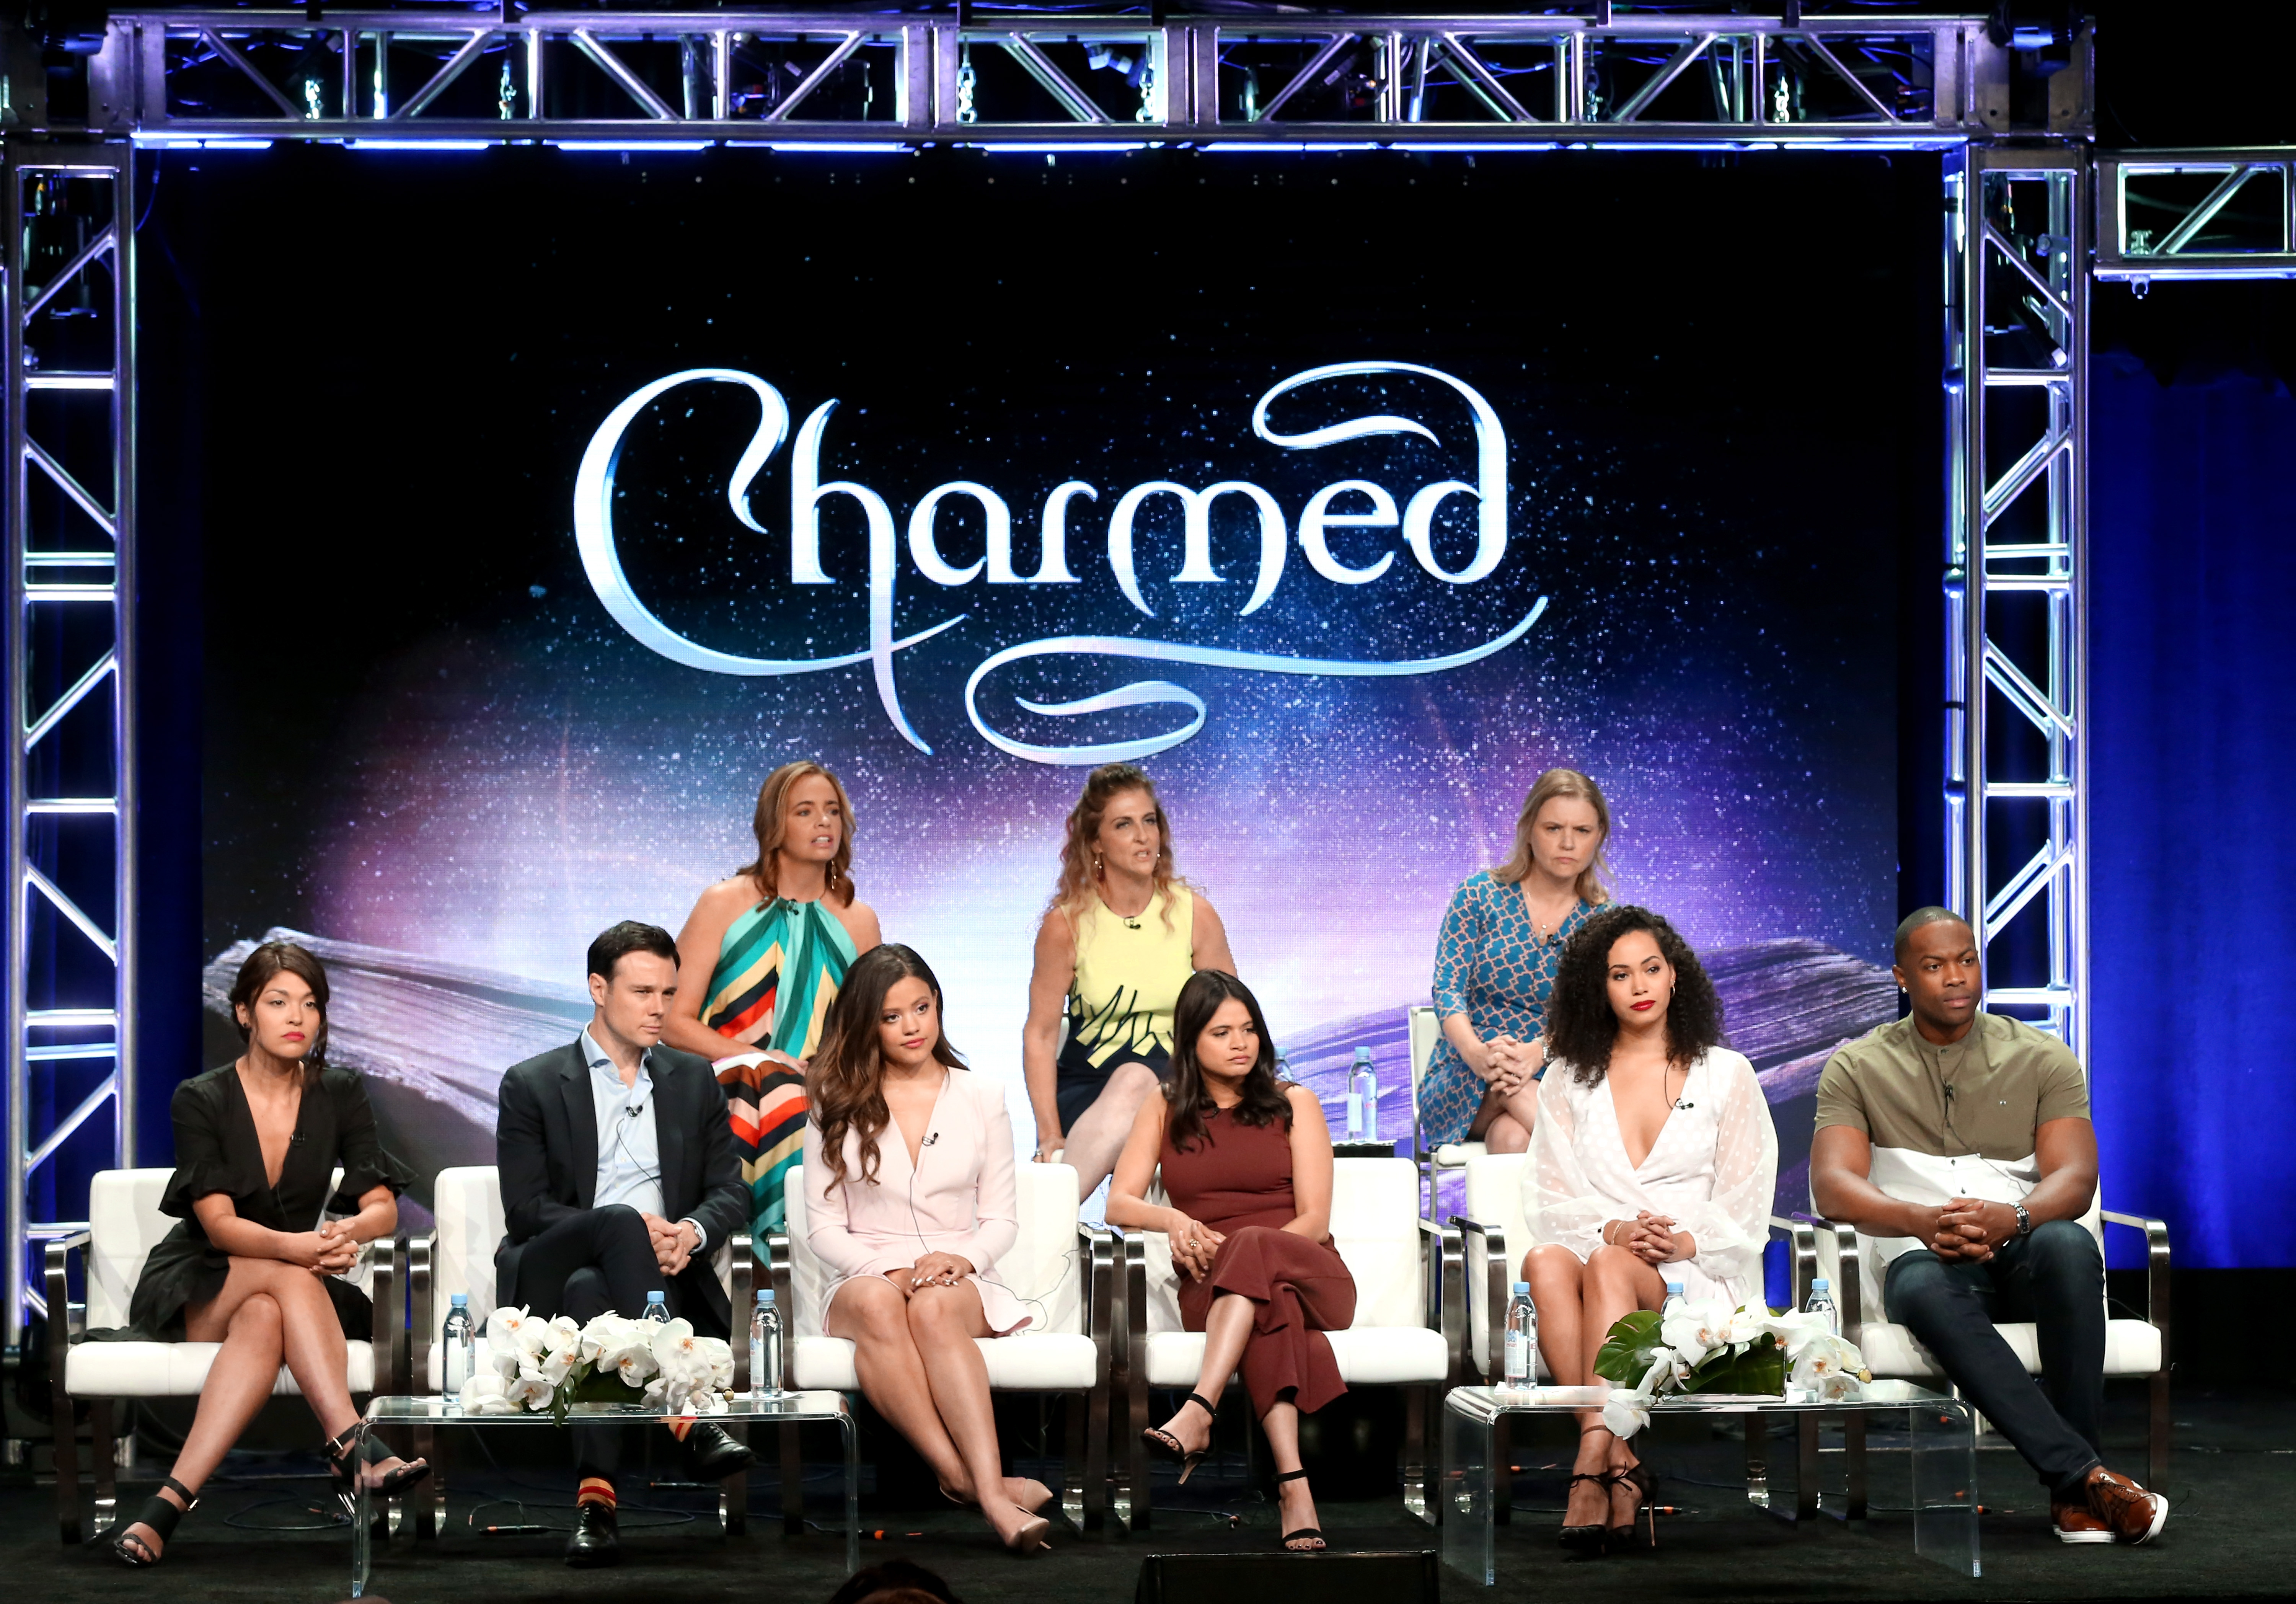 (Top L-R) Jessica O'Toole, Jennie Snyder Urman, Amy Rardin (Bottom L-R) Ellen Tamaki, Rupert Evans, Sarah Jeffery, Melonie Diaz, Madeleine Mantock, and Ser'Darius Blain from 'Charmed' speaks onstage at the CW Network portion of the Summer 2018 TCA Press Tour at The Beverly Hilton Hotel on August 6, 2018 in Beverly Hills, California.